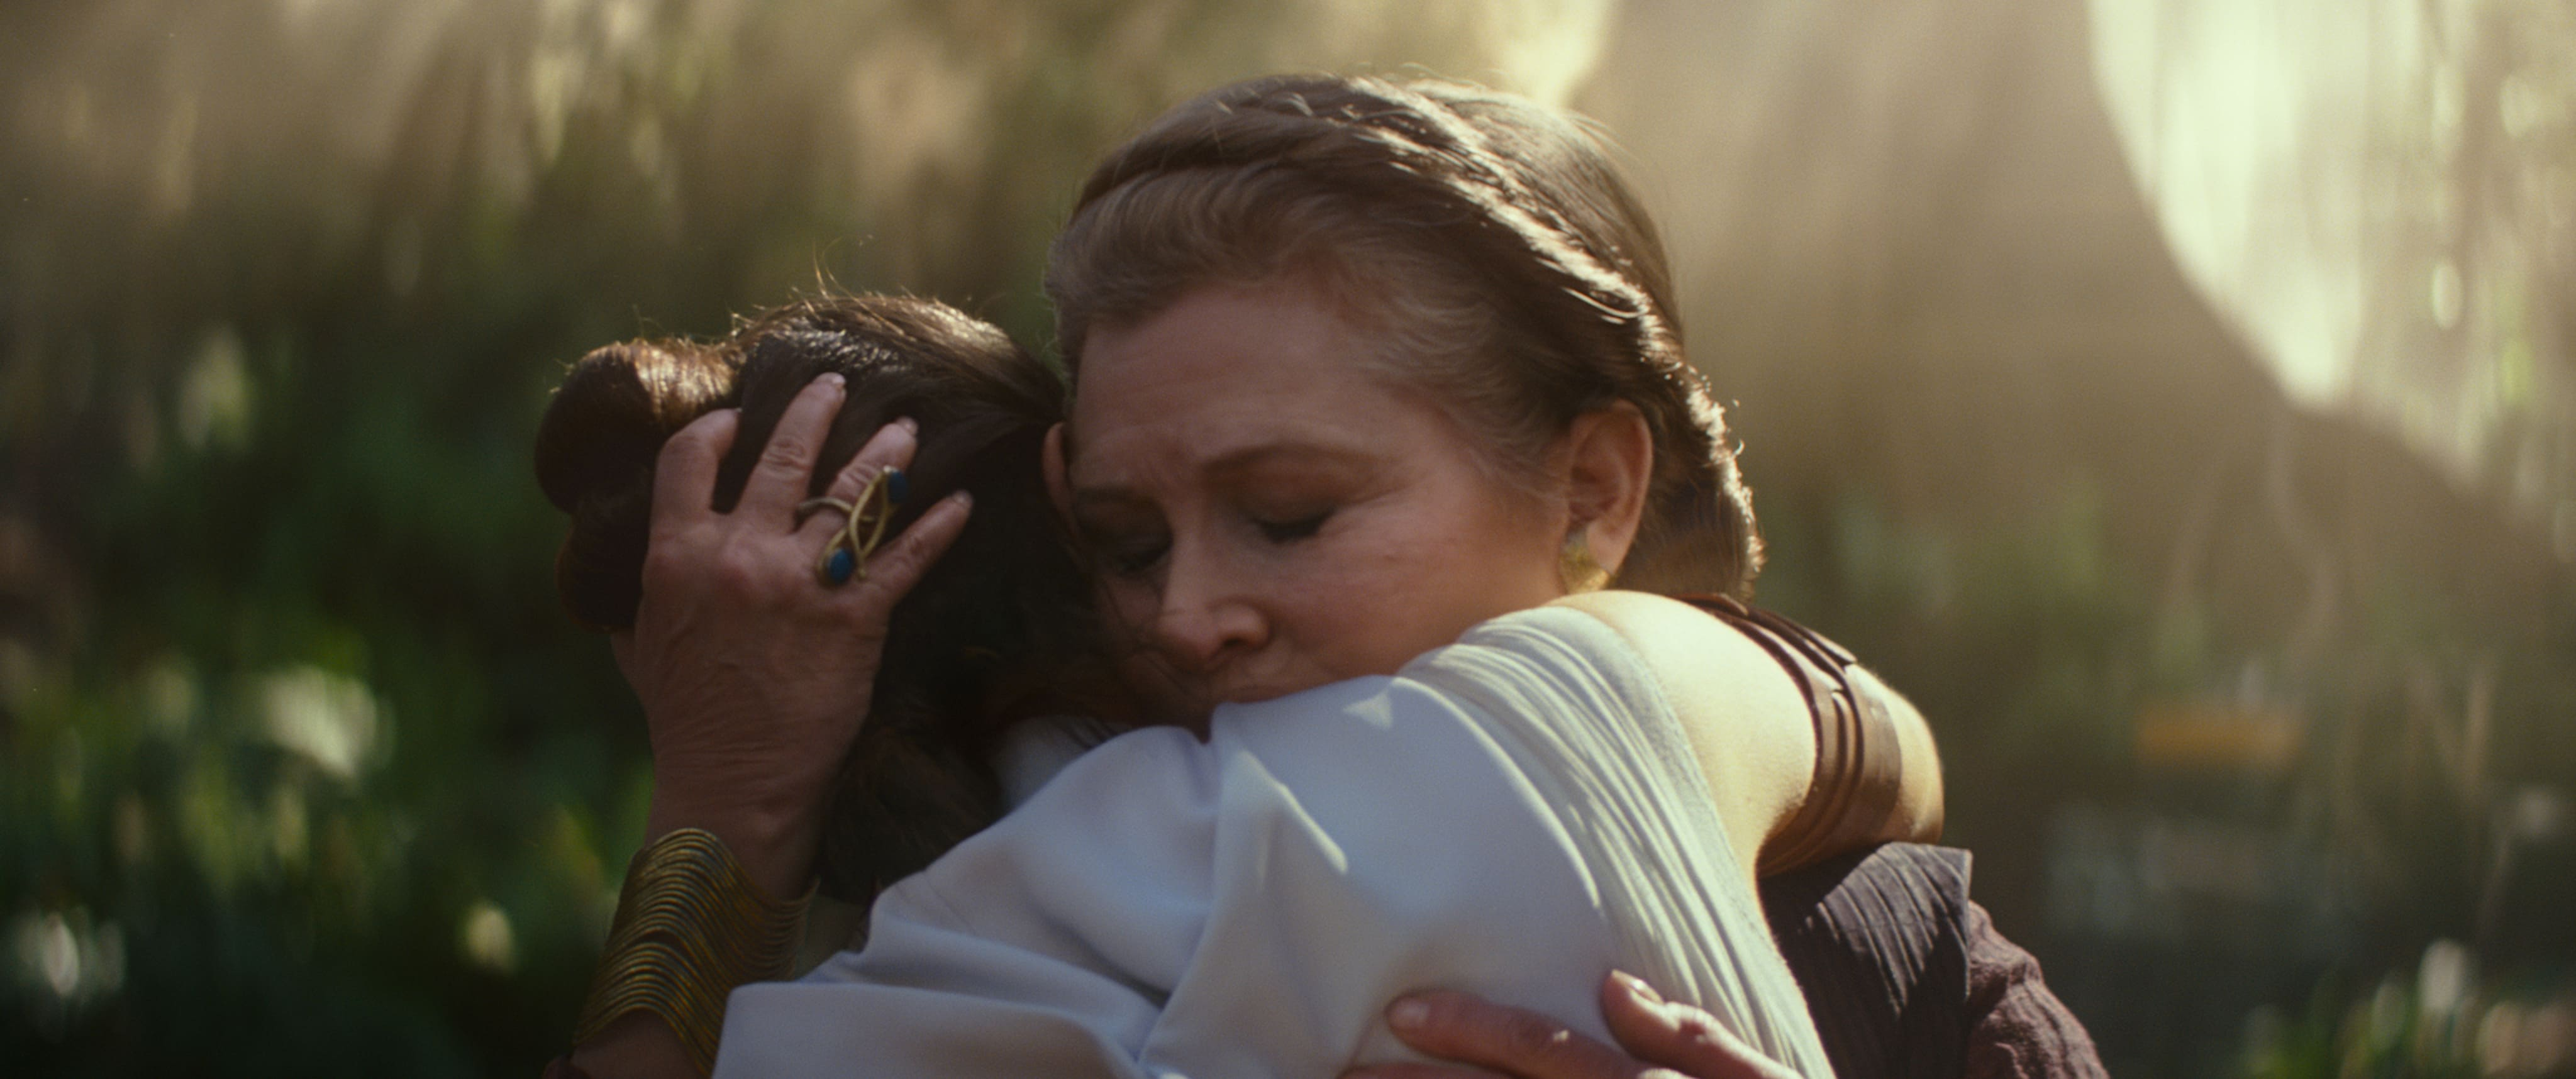 Star Wars Episode 9 What We Know So Far, Episode IX Leia